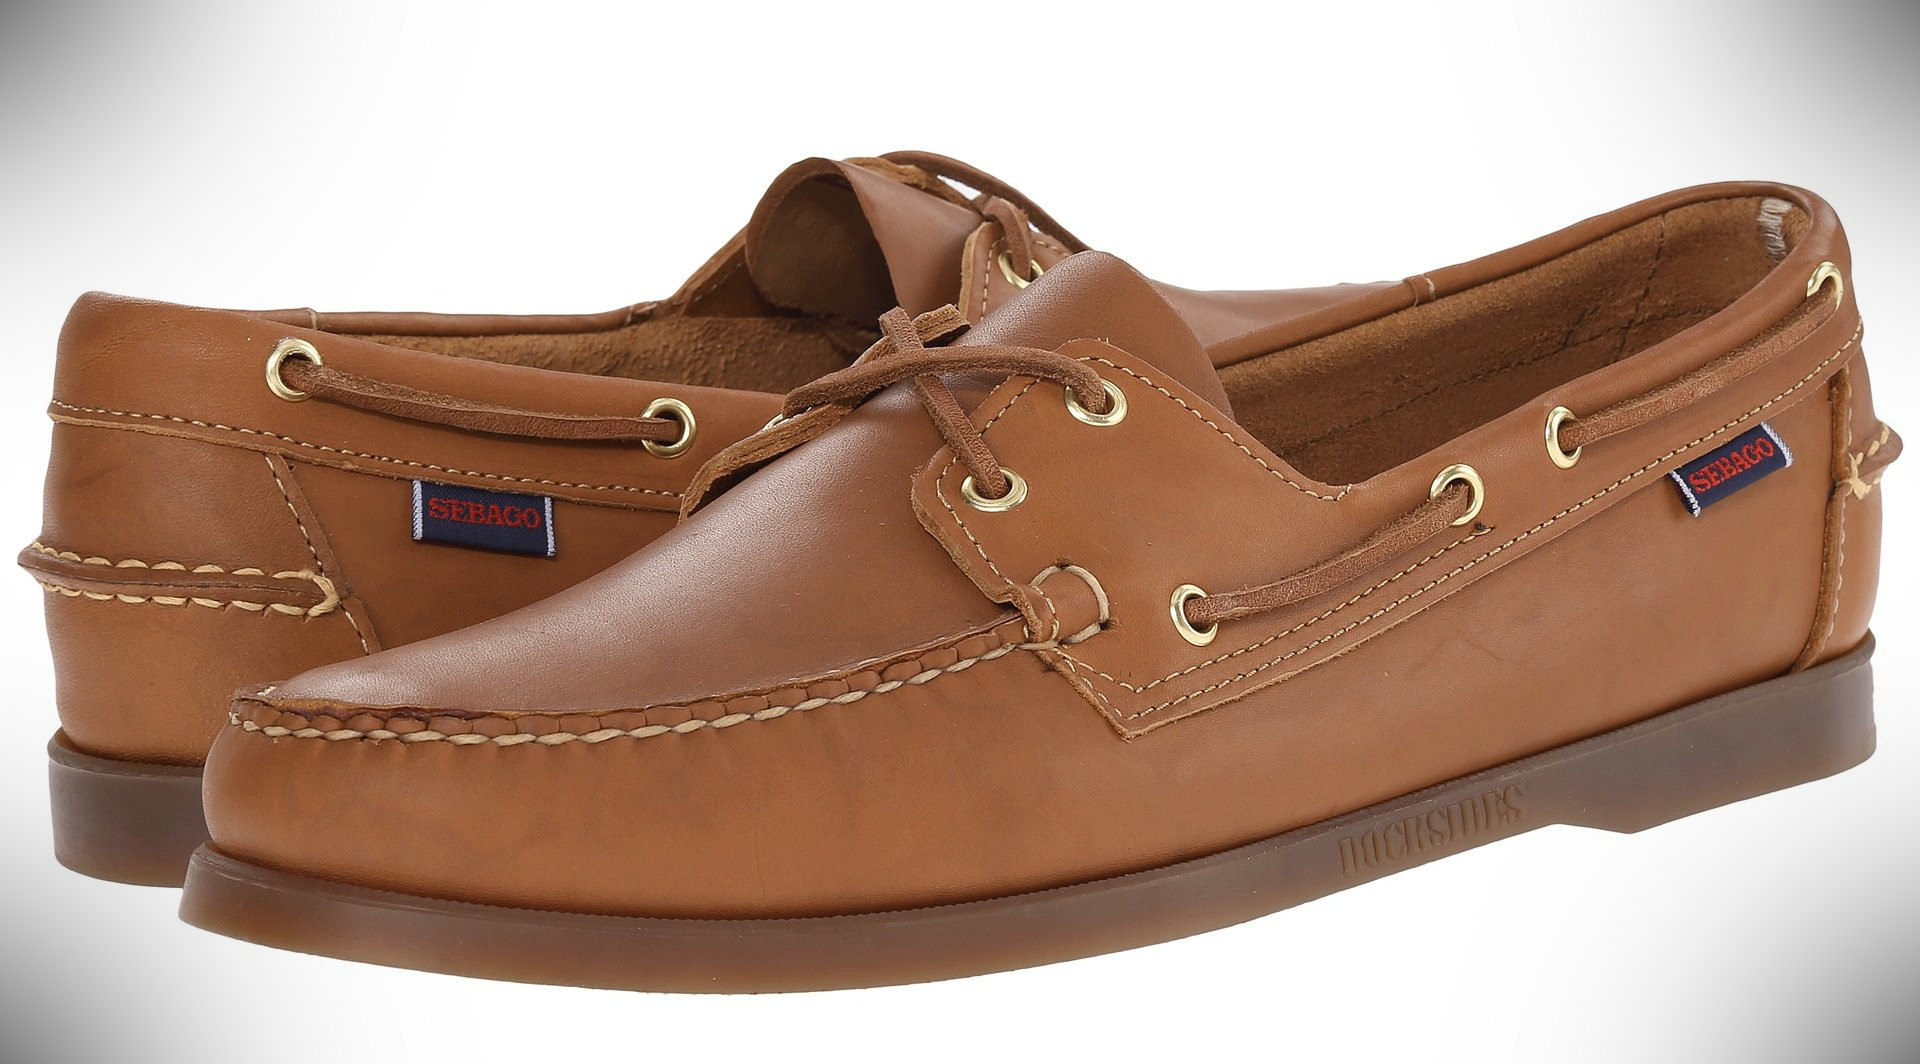 Sebago Docksiders – boat shoes that are business casual